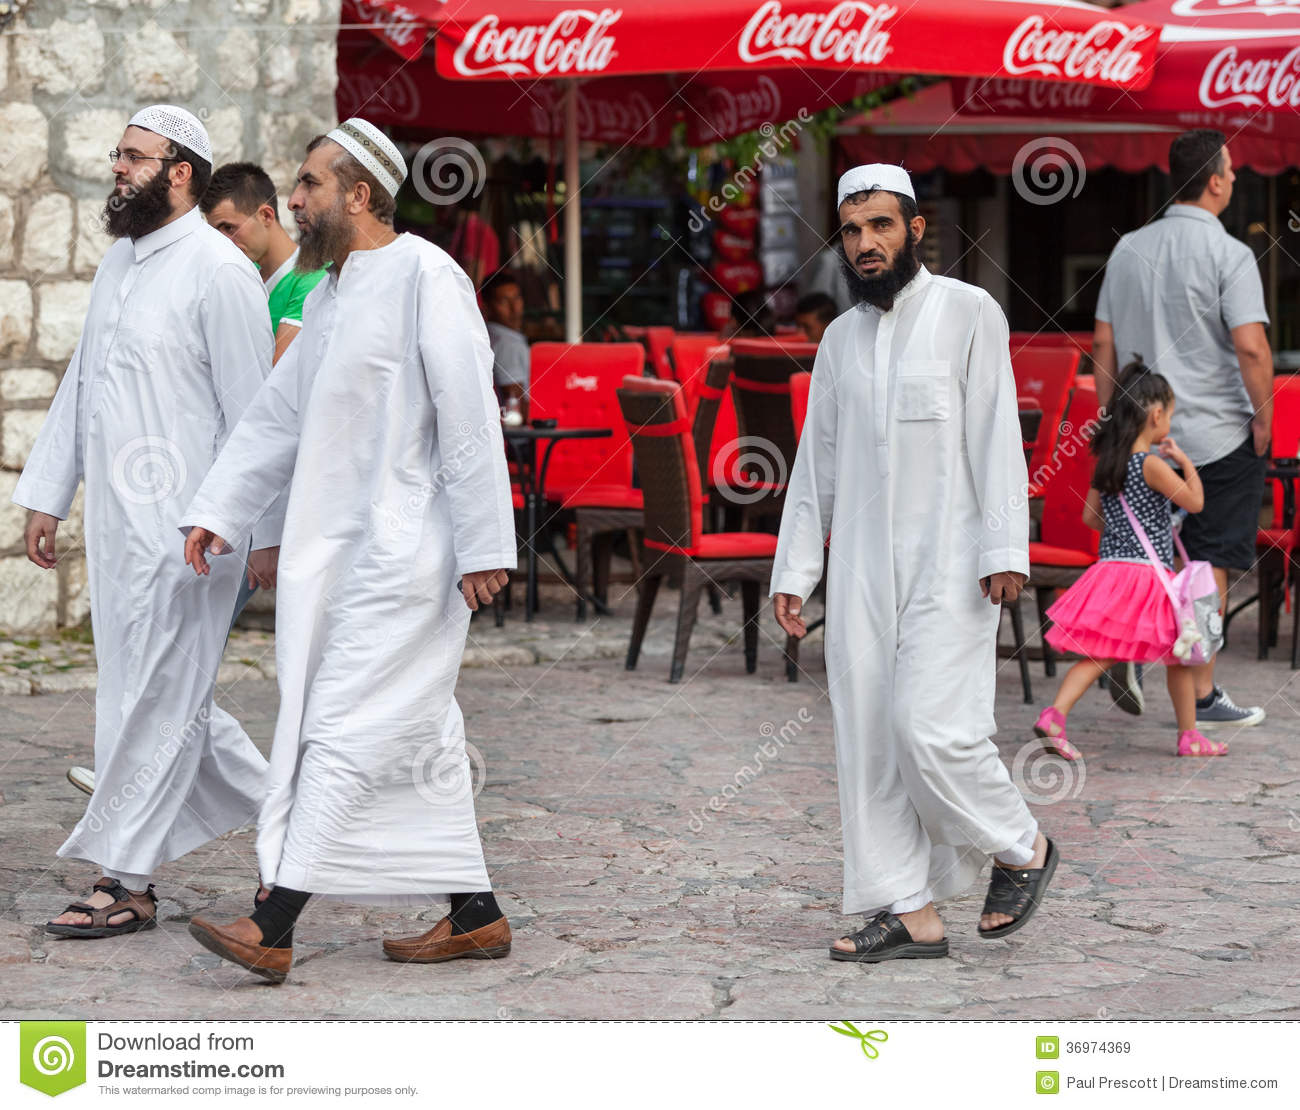 muslim single men in naalehu Meeting muslim singles has never been easier welcome to the simplest online dating site to date, flirt, or just chat with muslim singles it's free to register, view photos, and send messages to single muslim men and women in your area.